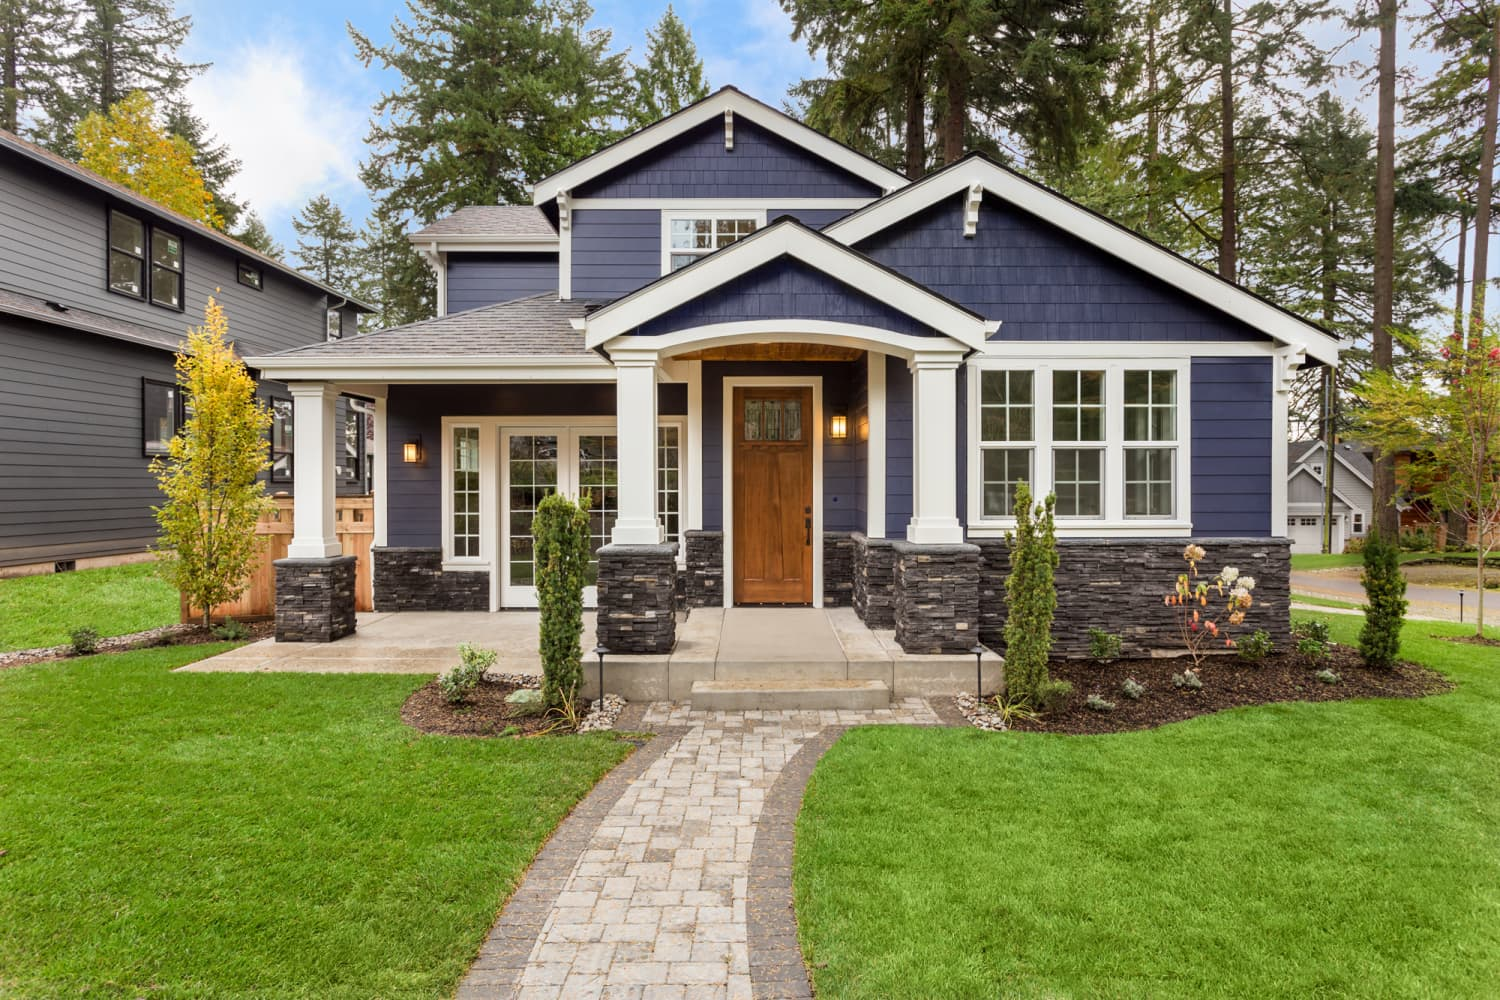 This Kind of Mulch Could Increase Your Curb Appeal, According to HGTV Experts